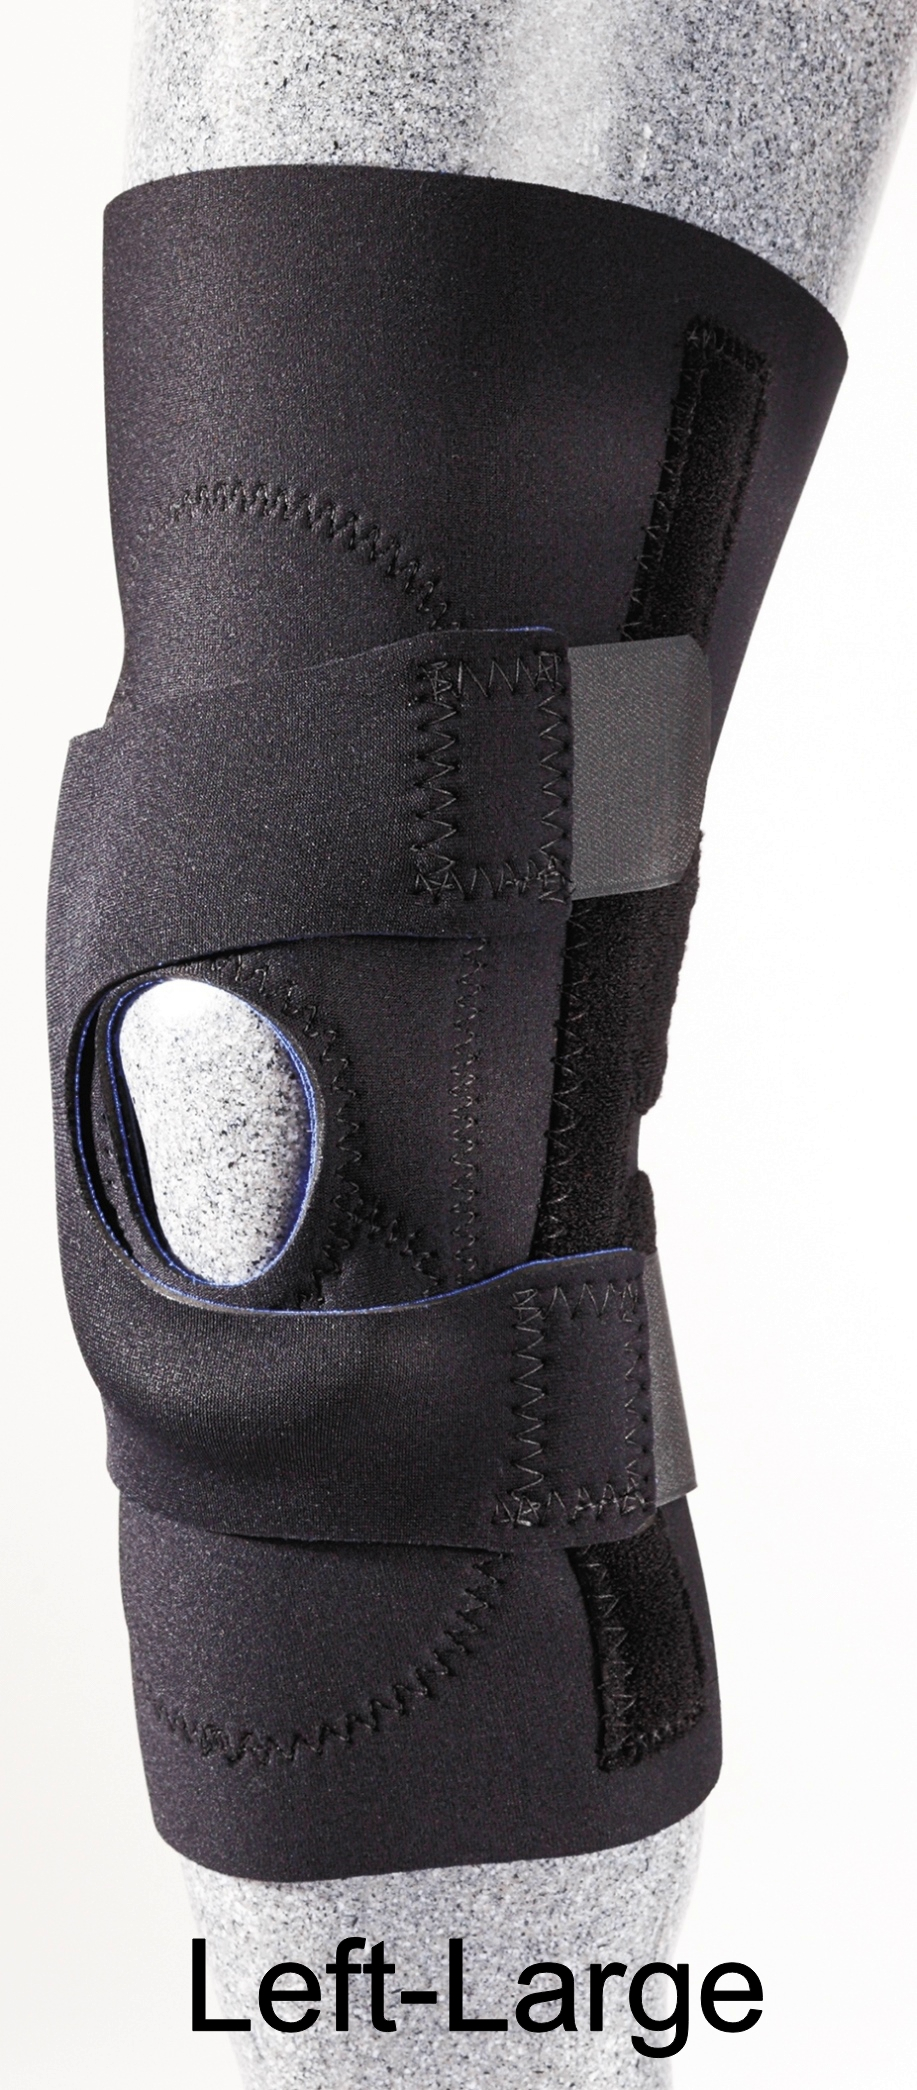 Patellar Stabilizer (J-Brace) with Pull Straps - Left - Large - (15